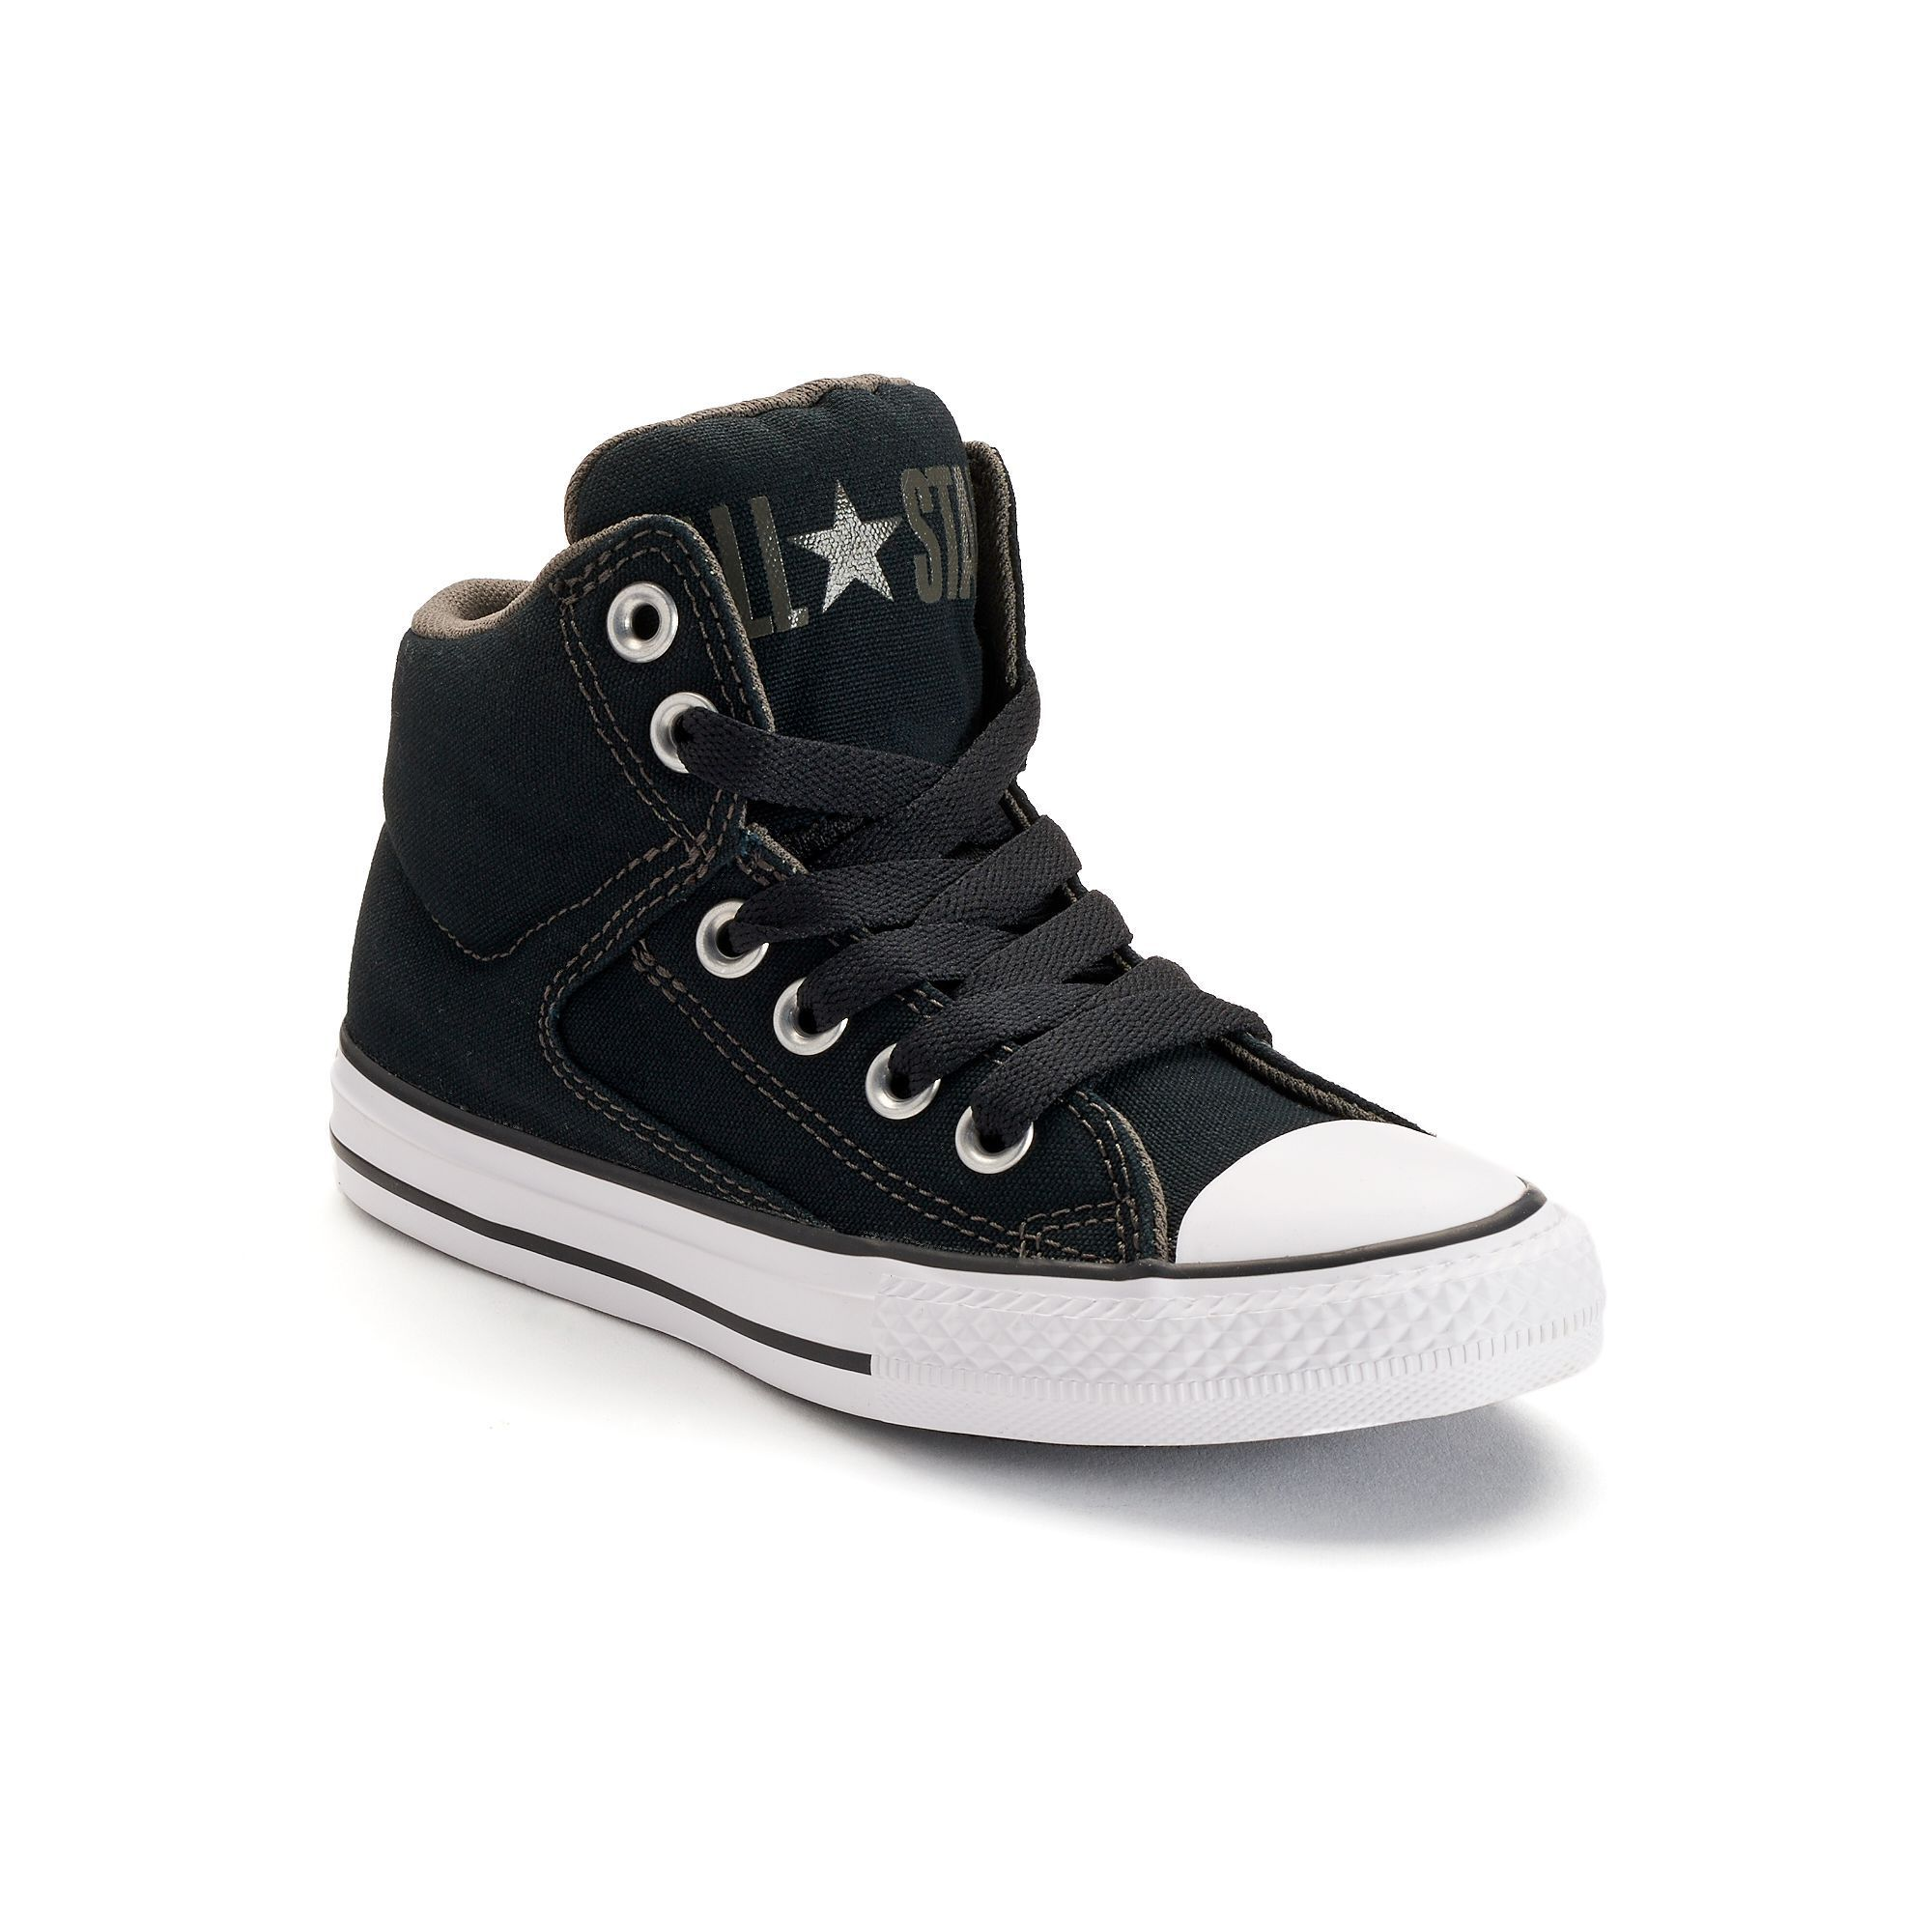 70a4e45b9ae4 Kid s Converse High Street High-Top Sneakers